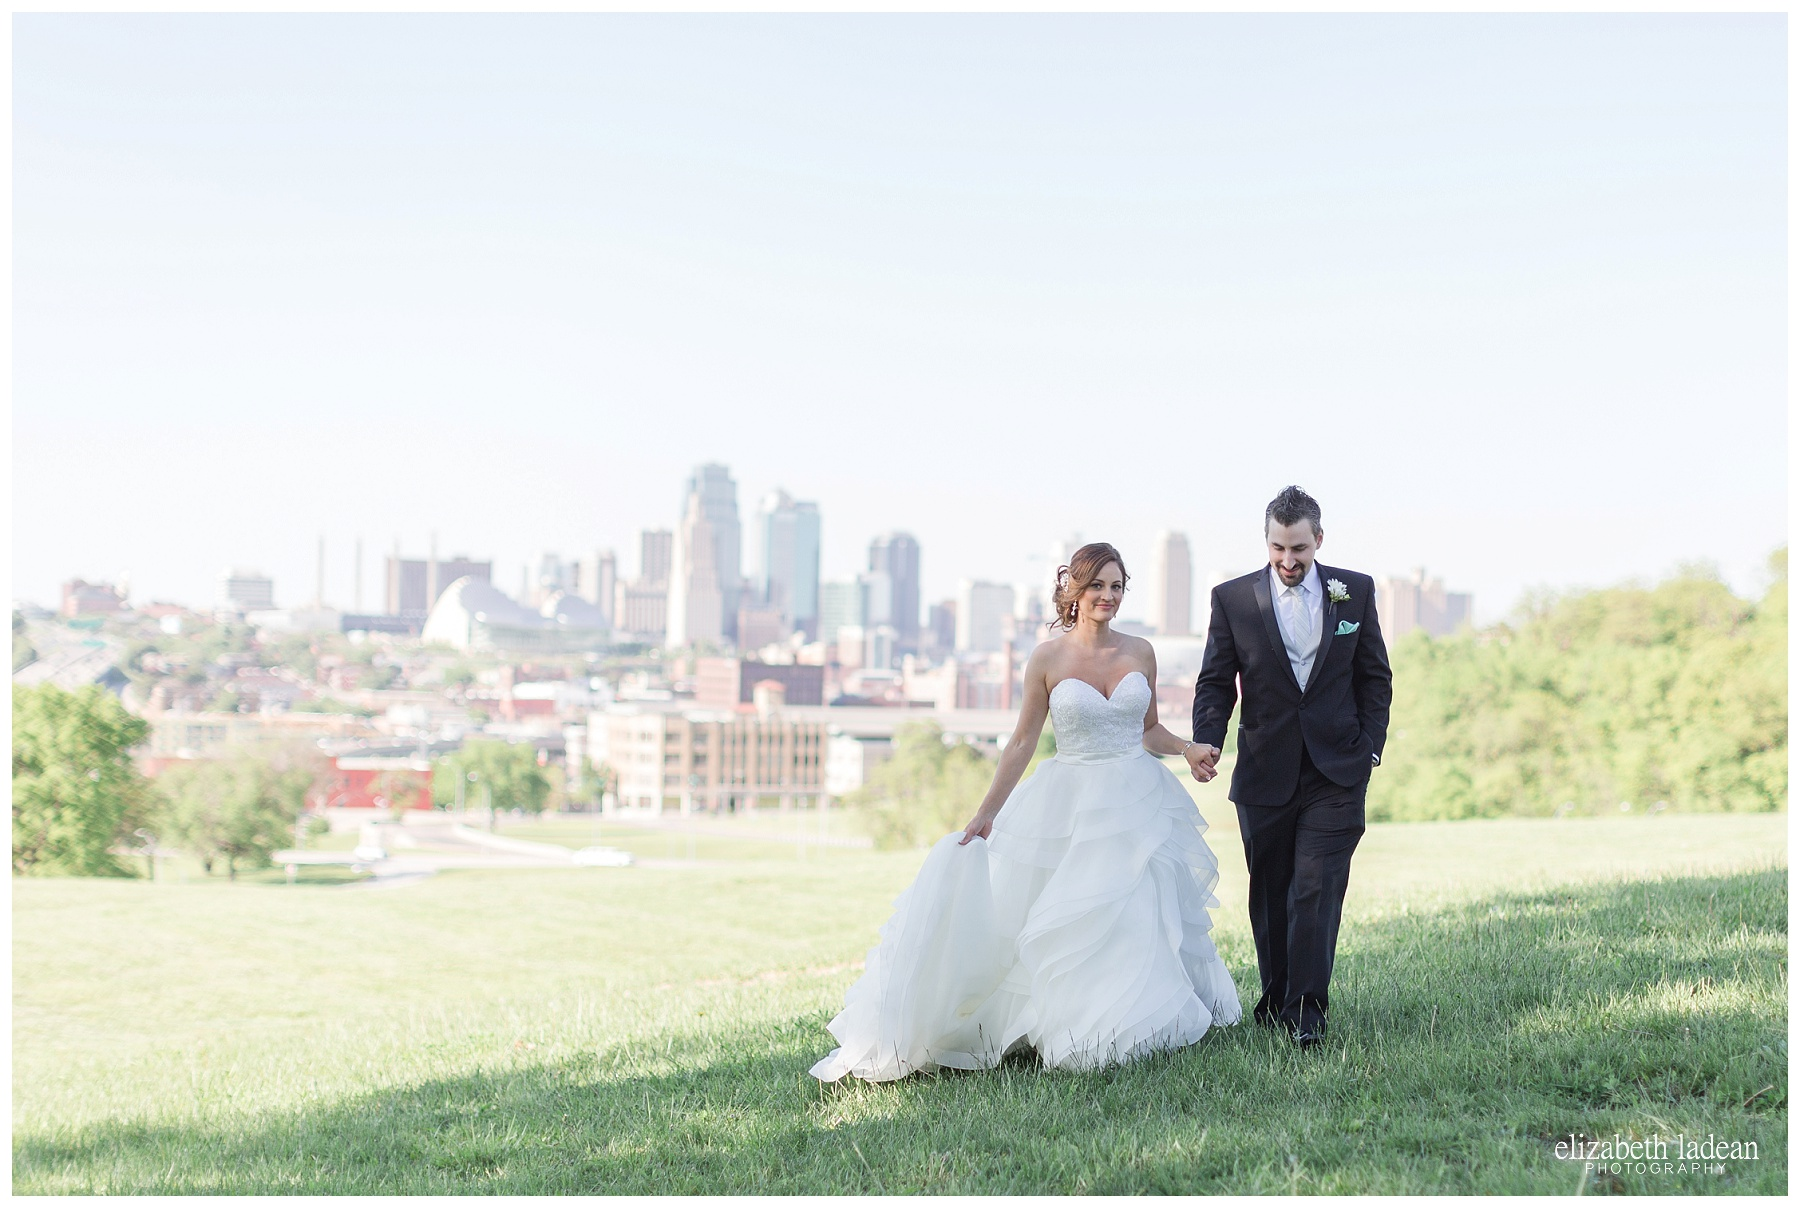 Terrace-on-Grand-Kansas-City-Wedding-Photography-C+J-0506-Elizabeth-Ladean-Photography-photo_0636.jpg